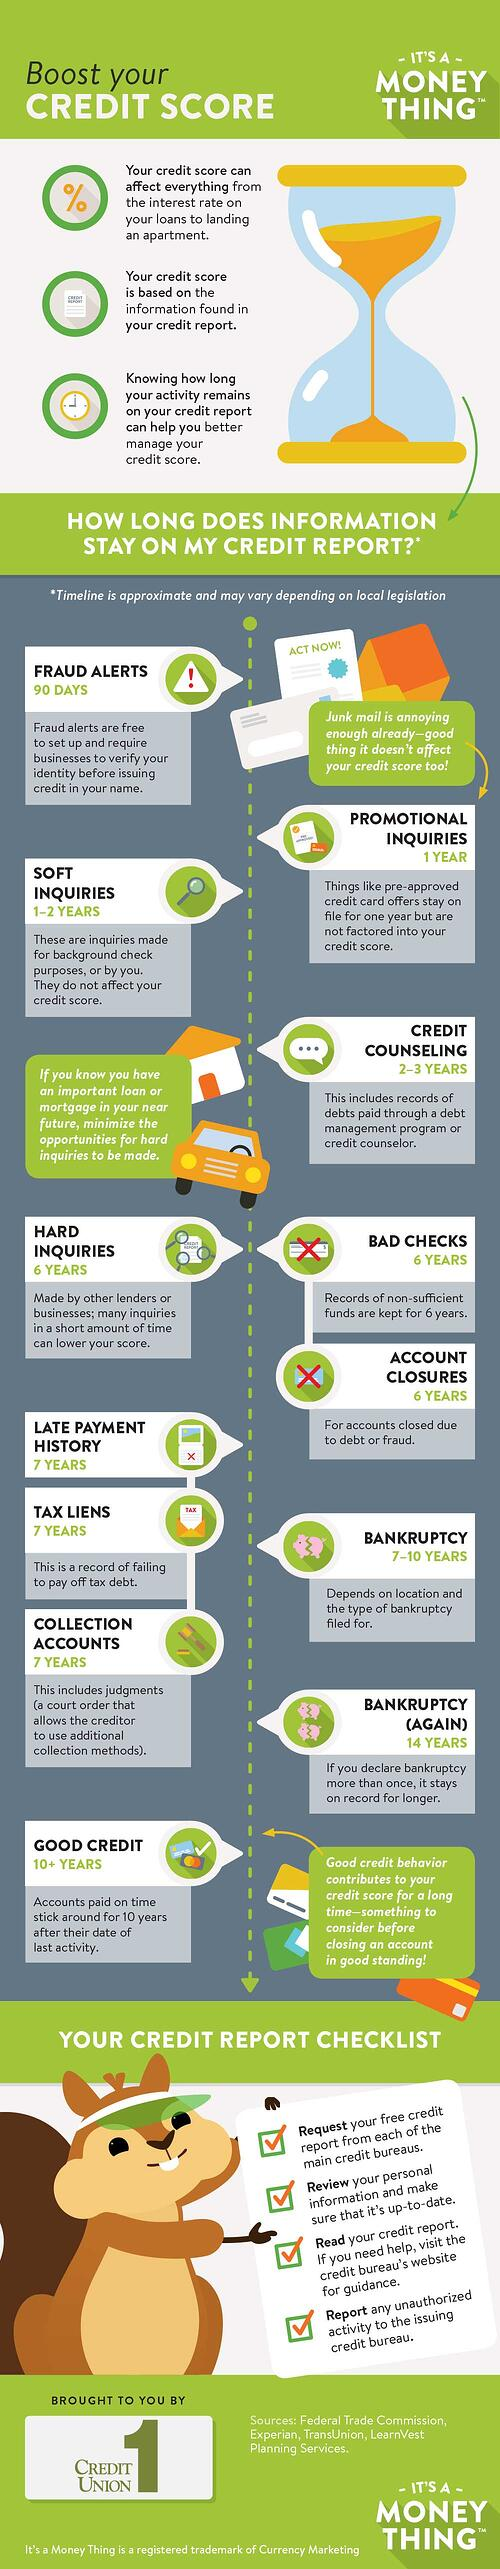 Boost_Your_Credit_Score_Infographic